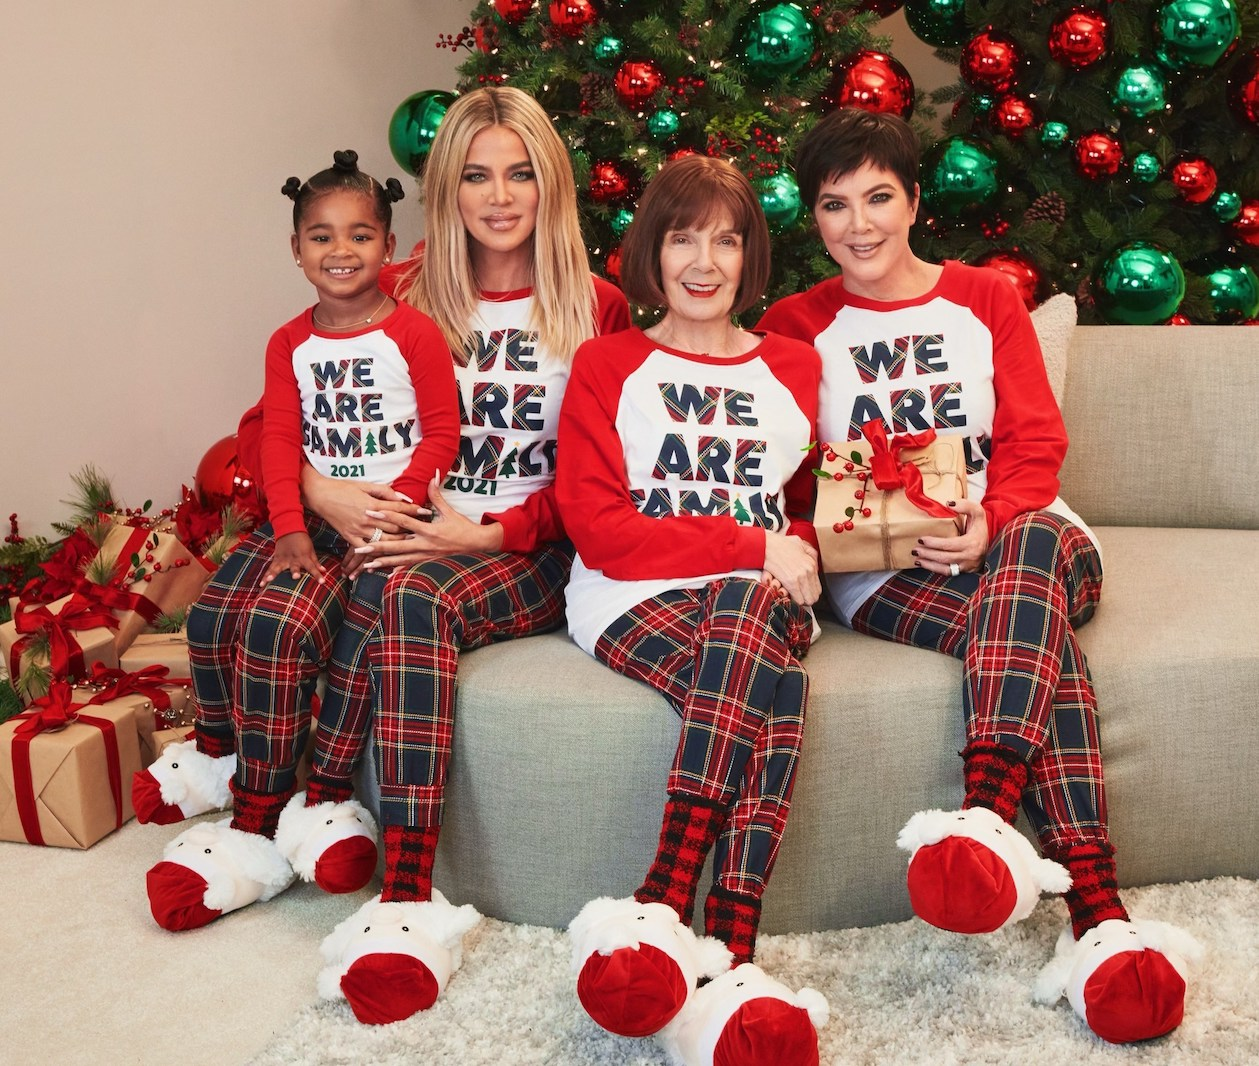 Khloé Kardashian and her daughter, True, and Kris Jenner and her mom, MJ Shannon wear The Children's Place 2021 Holiday Matching Family Pajamas.